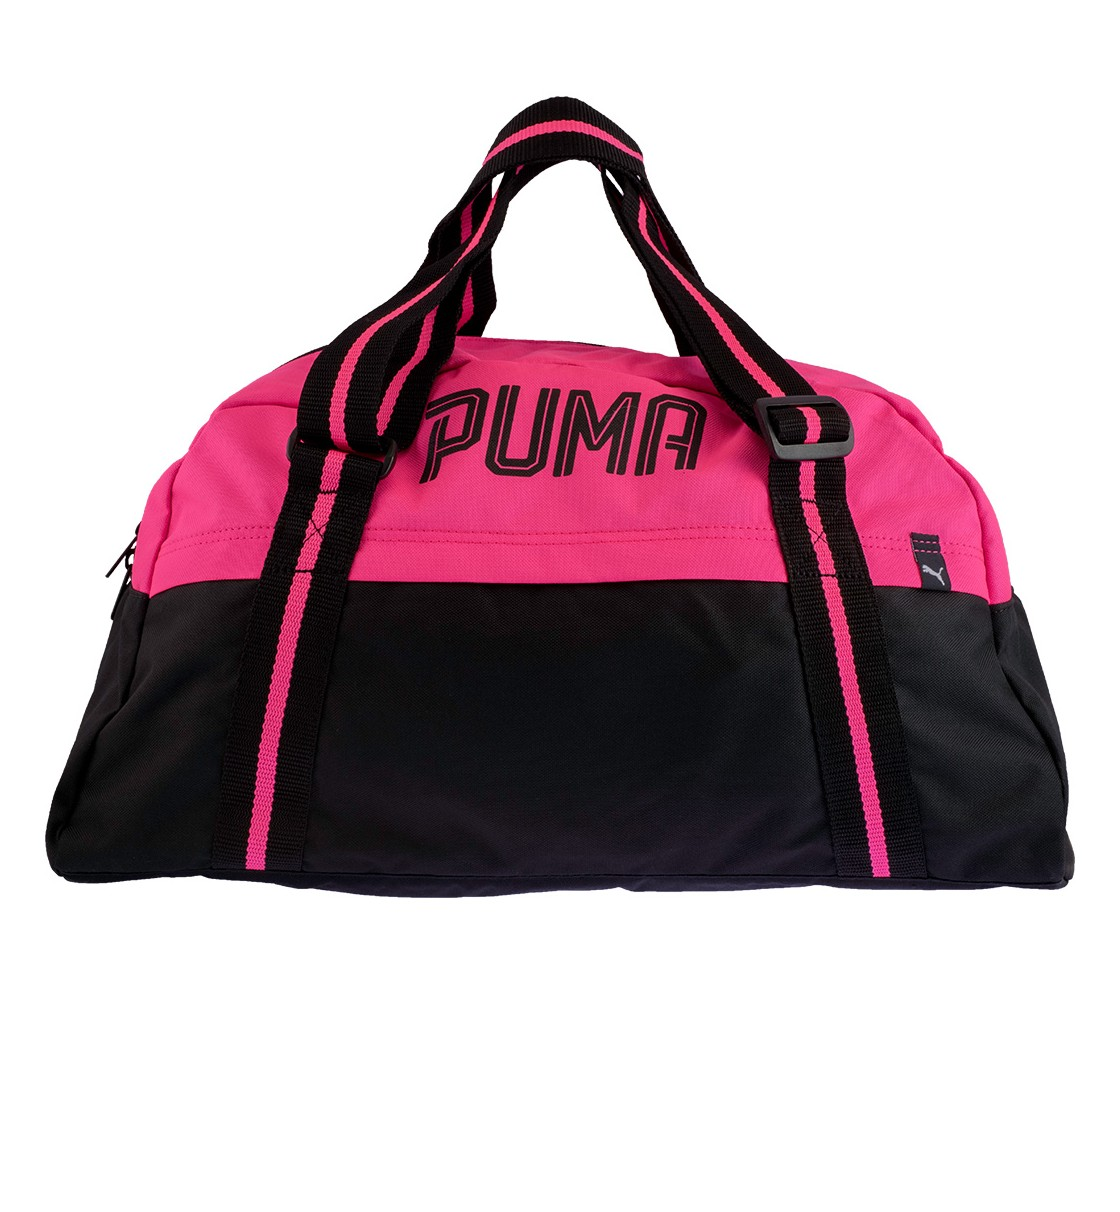 Puma Γυναικεία Τσάντα Fundamentals Sports Bag Female 074411